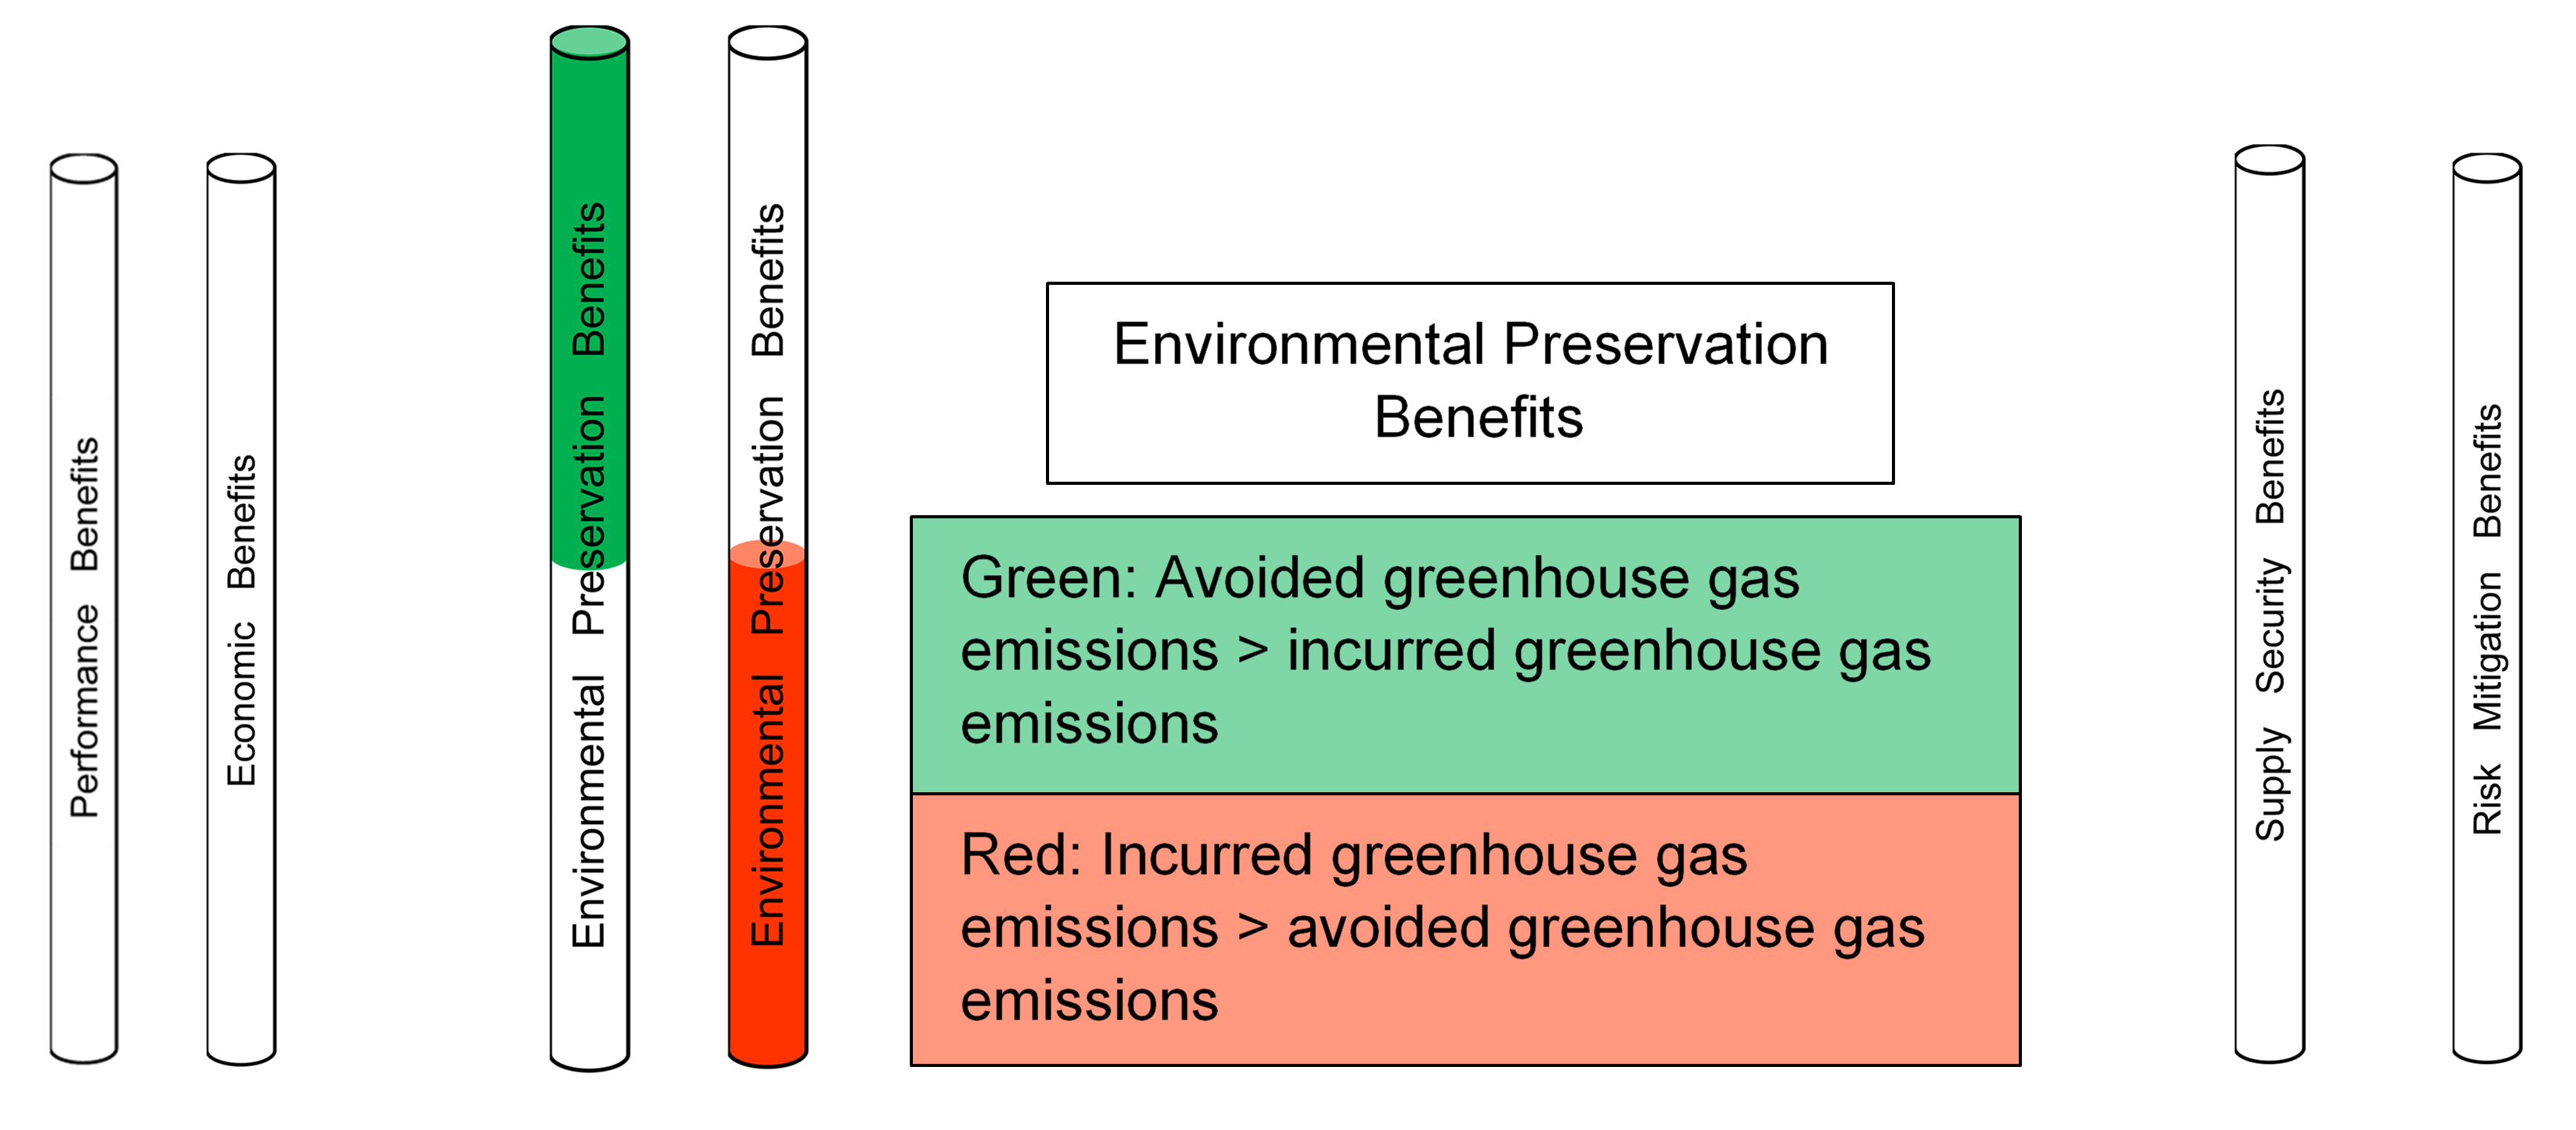 How to Evaluate Environmental Preservation Benefits of an Energy Option